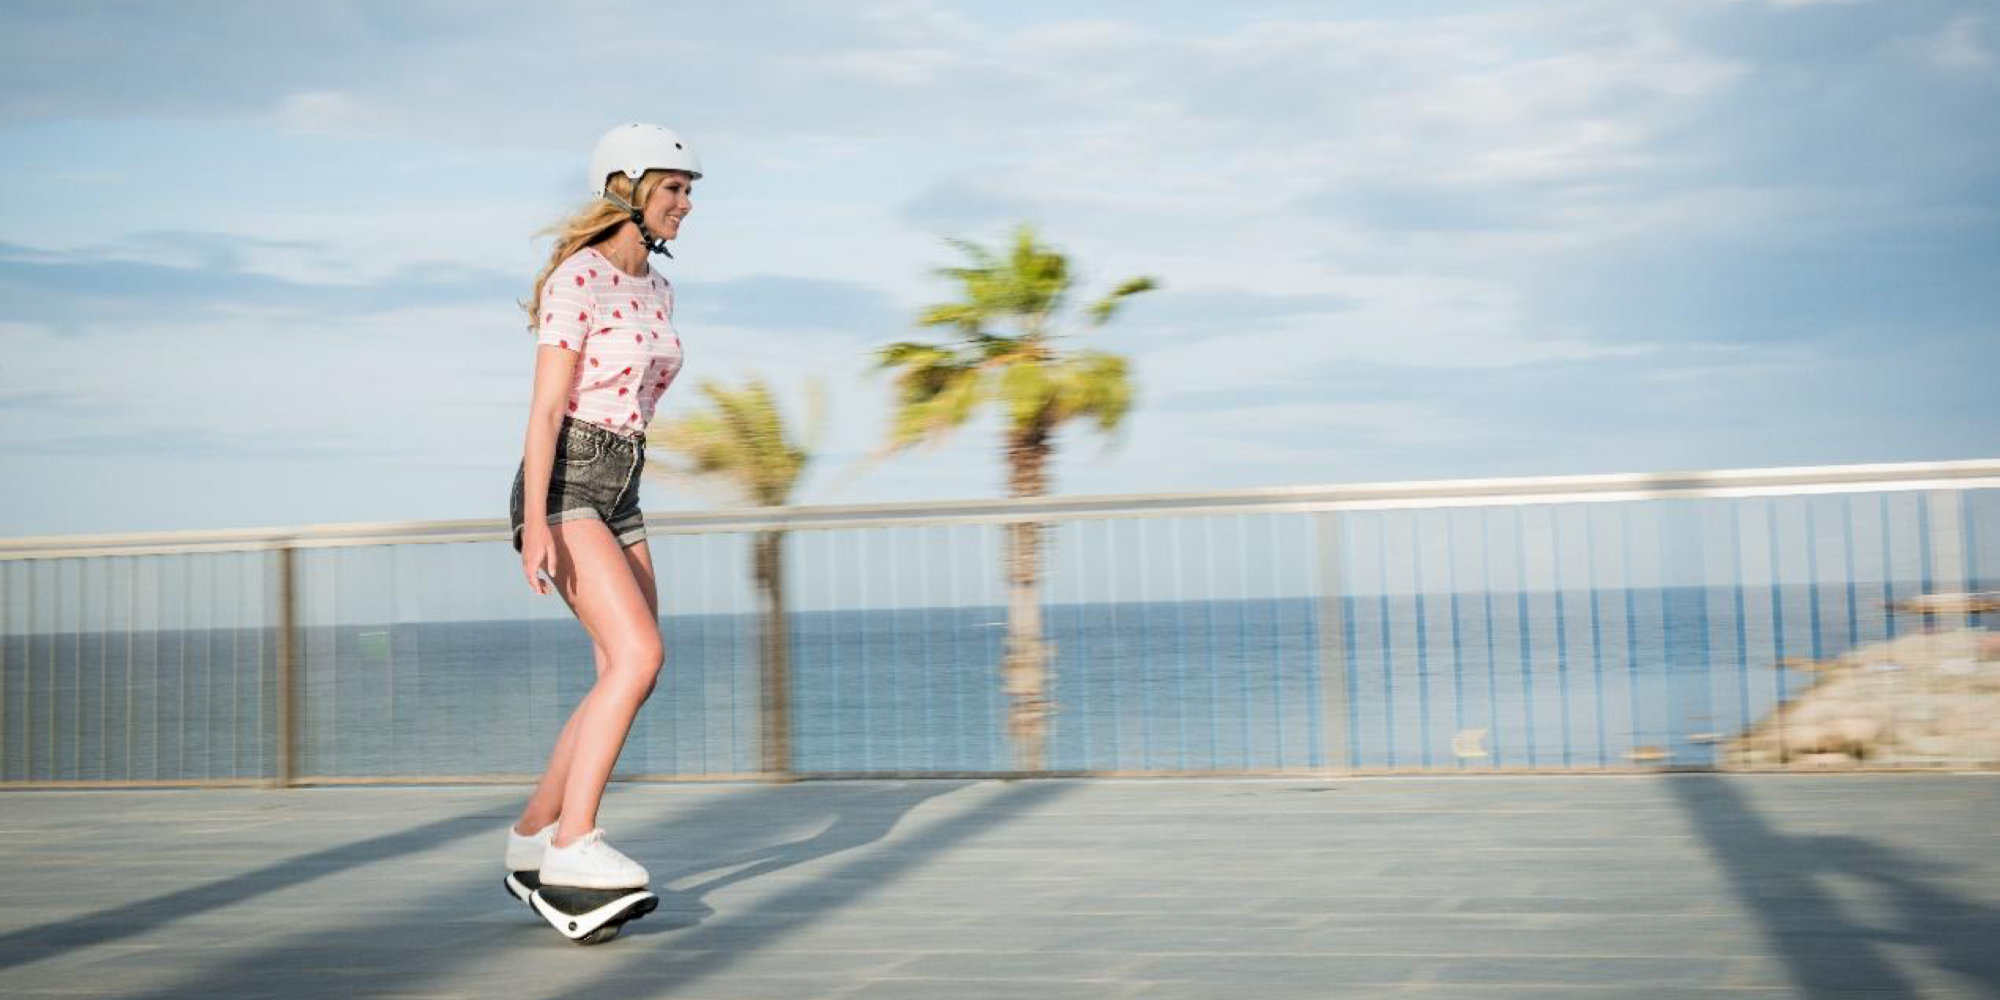 Segway's new electric skates leverage gyroscope tech for a self-balancing ride